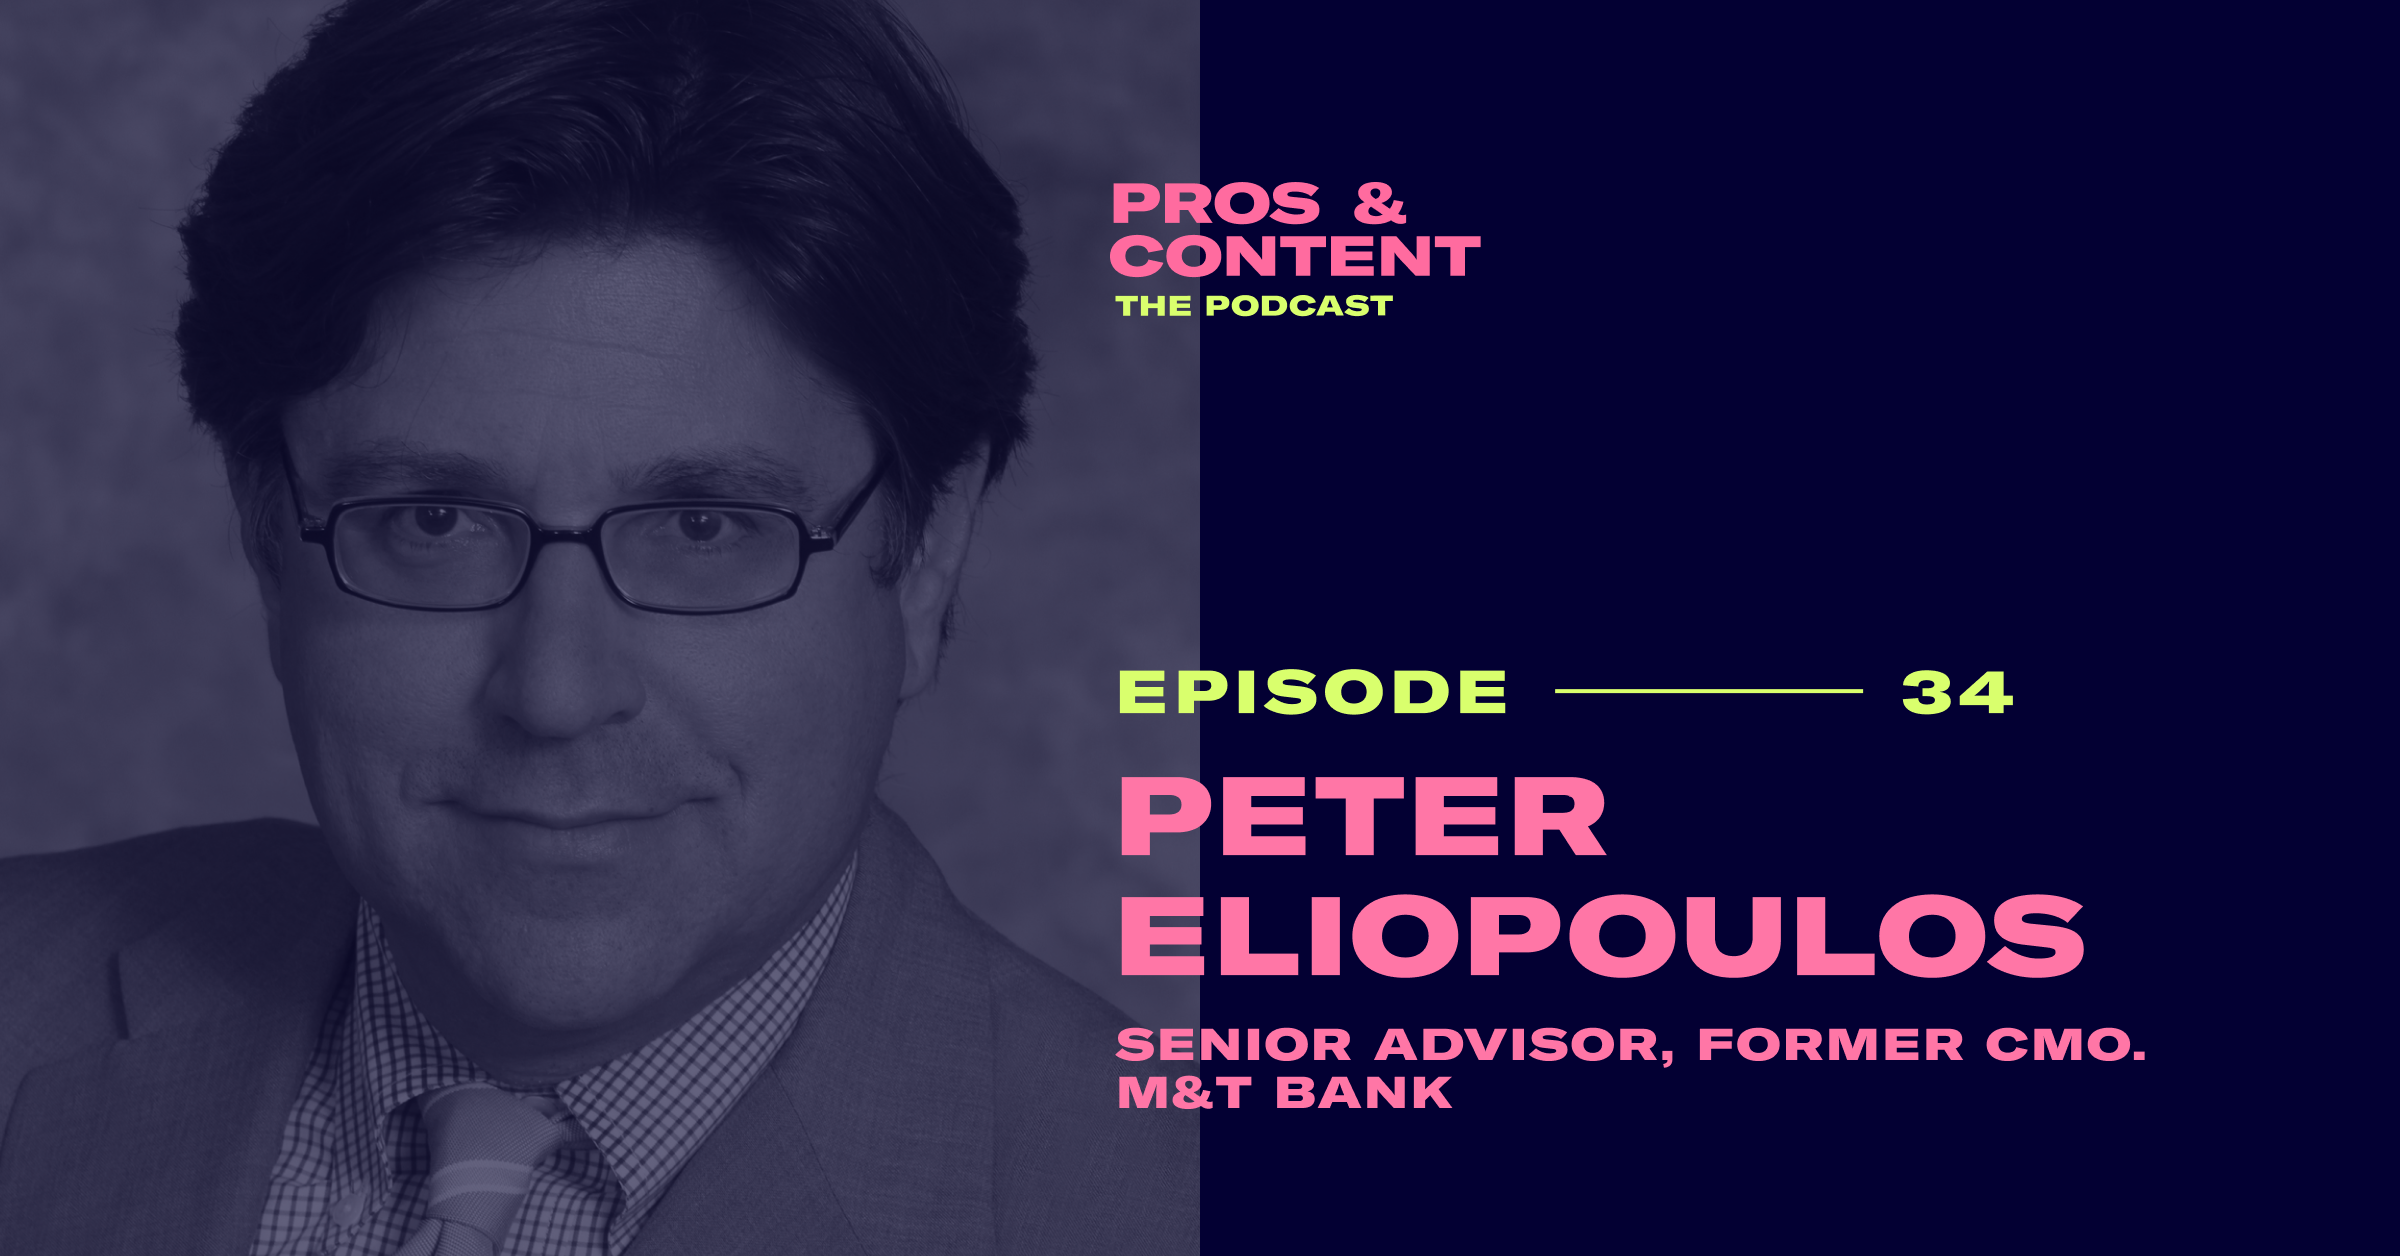 Pros & Content Podcast: Peter Eliopoulos